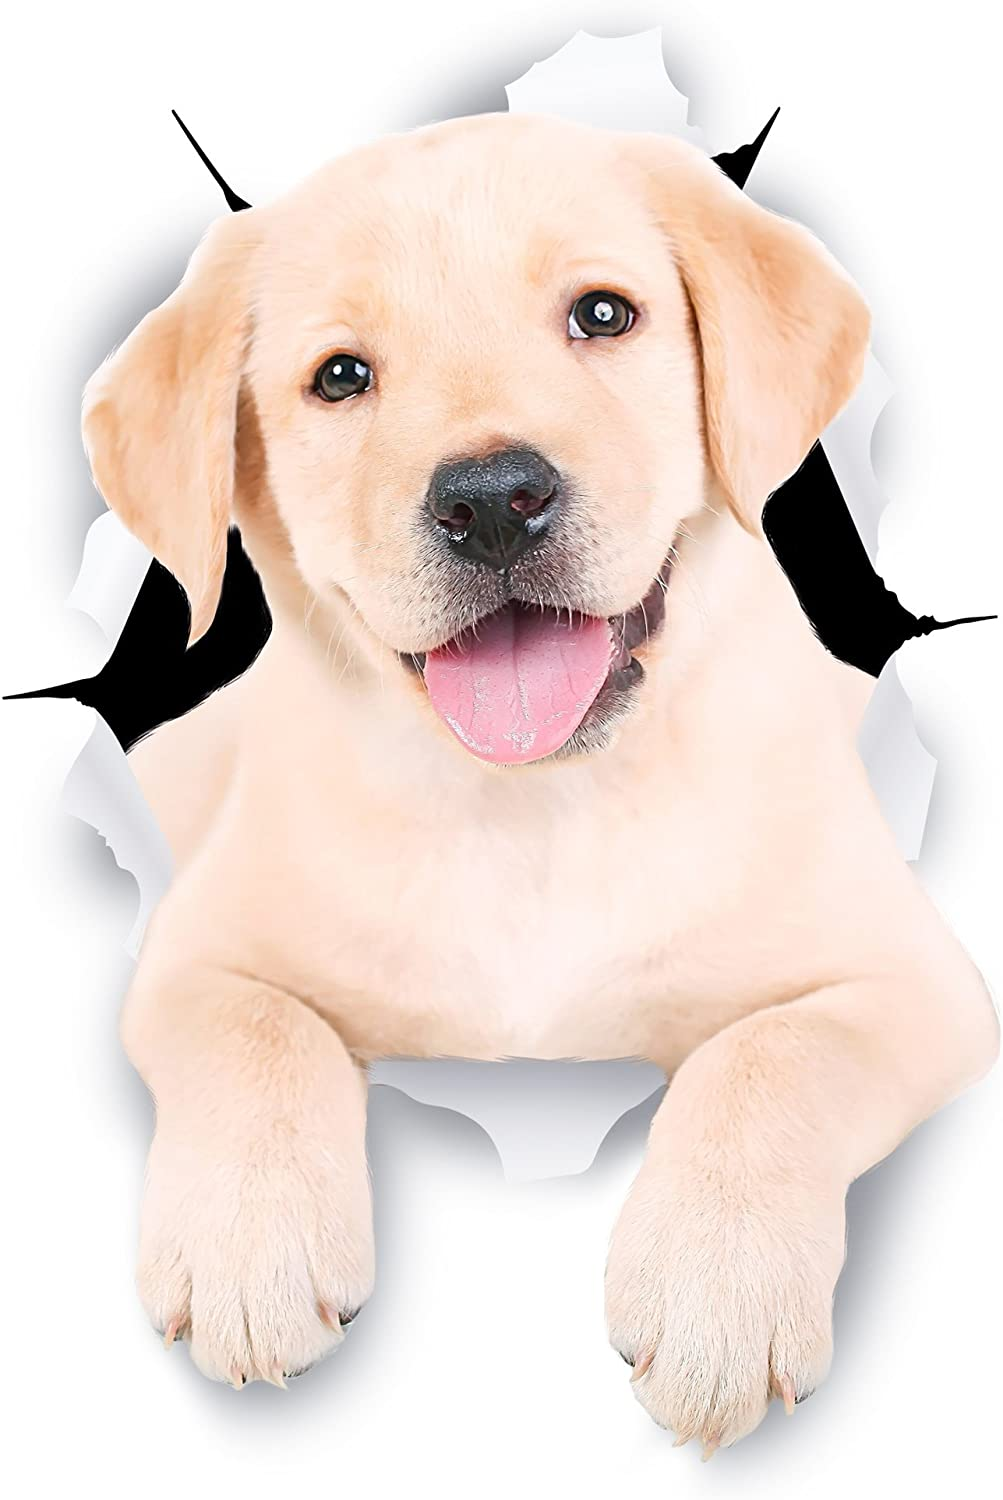 Winston & Bear 3D Dog Stickers - 2 Pack - Cute White Labrador Retriever Stickers for Wall, Fridge, Toilet and More - The Best Lab Gifts - Retail Packaged White Labrador Decals